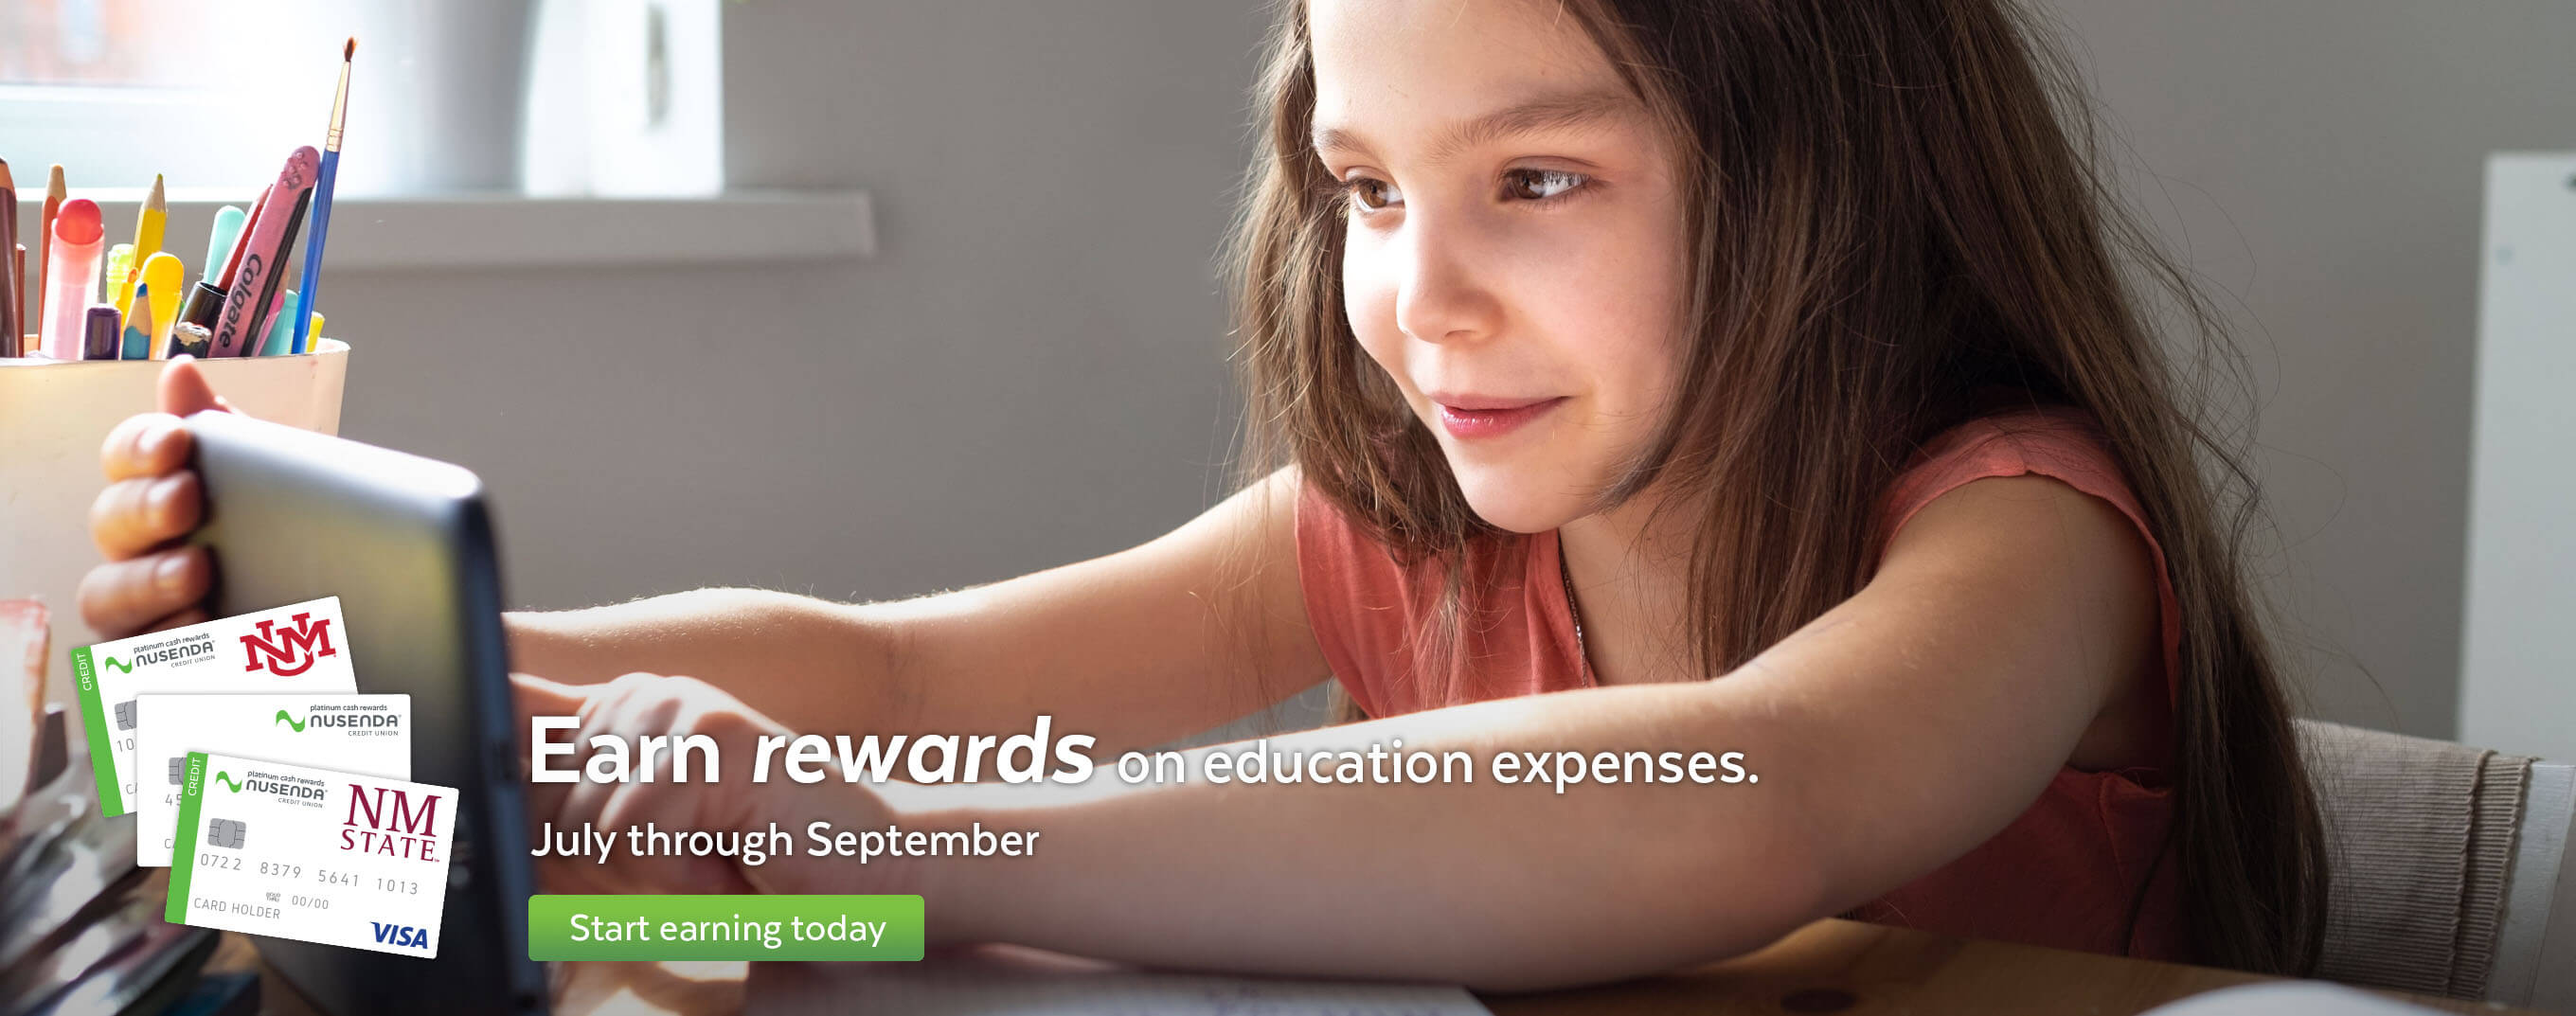 Earn rewards on education expenses now through September.